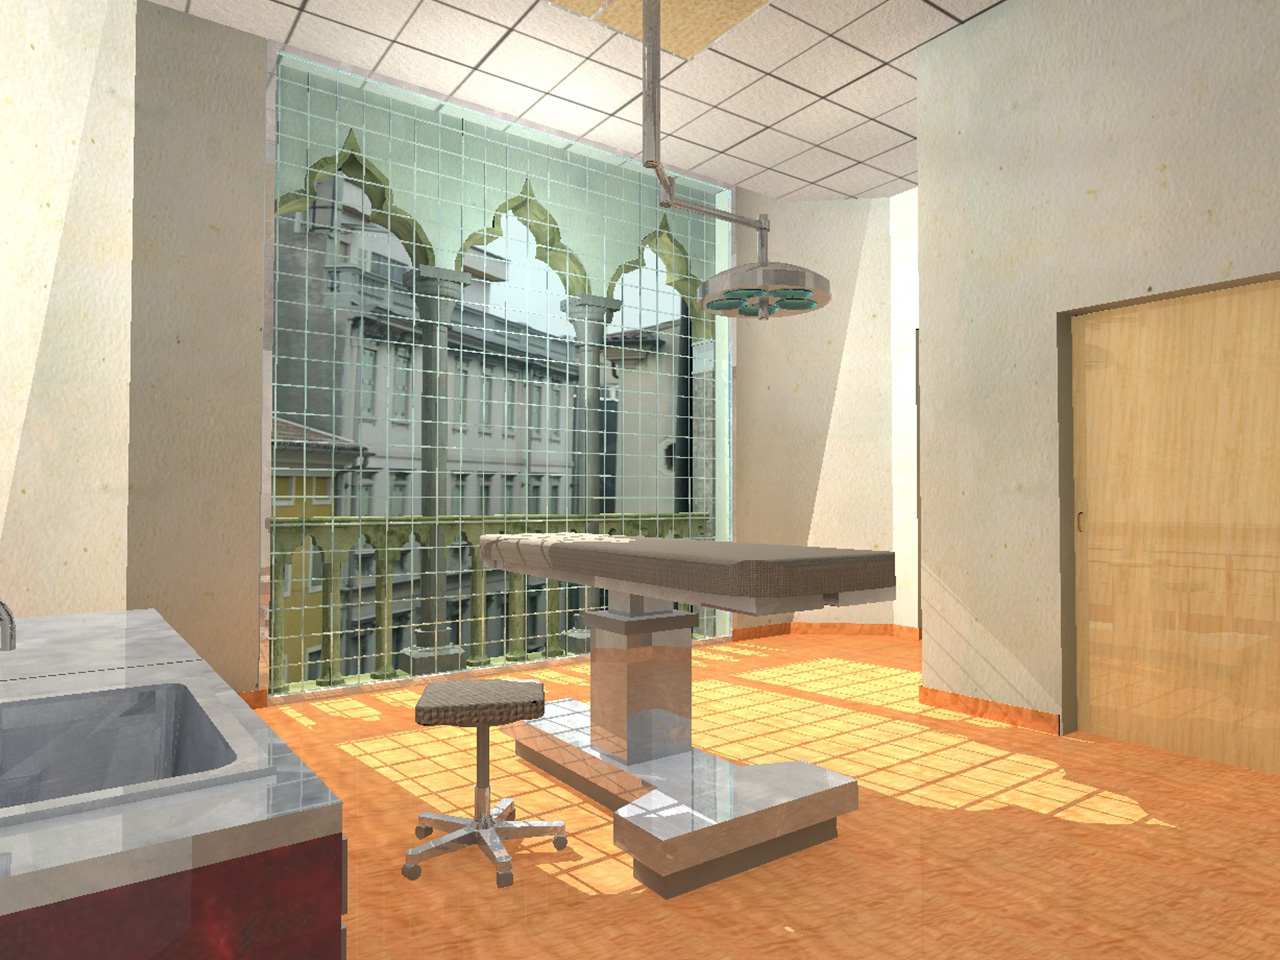 Development of outpatient clinic areas - Padova Italy 03